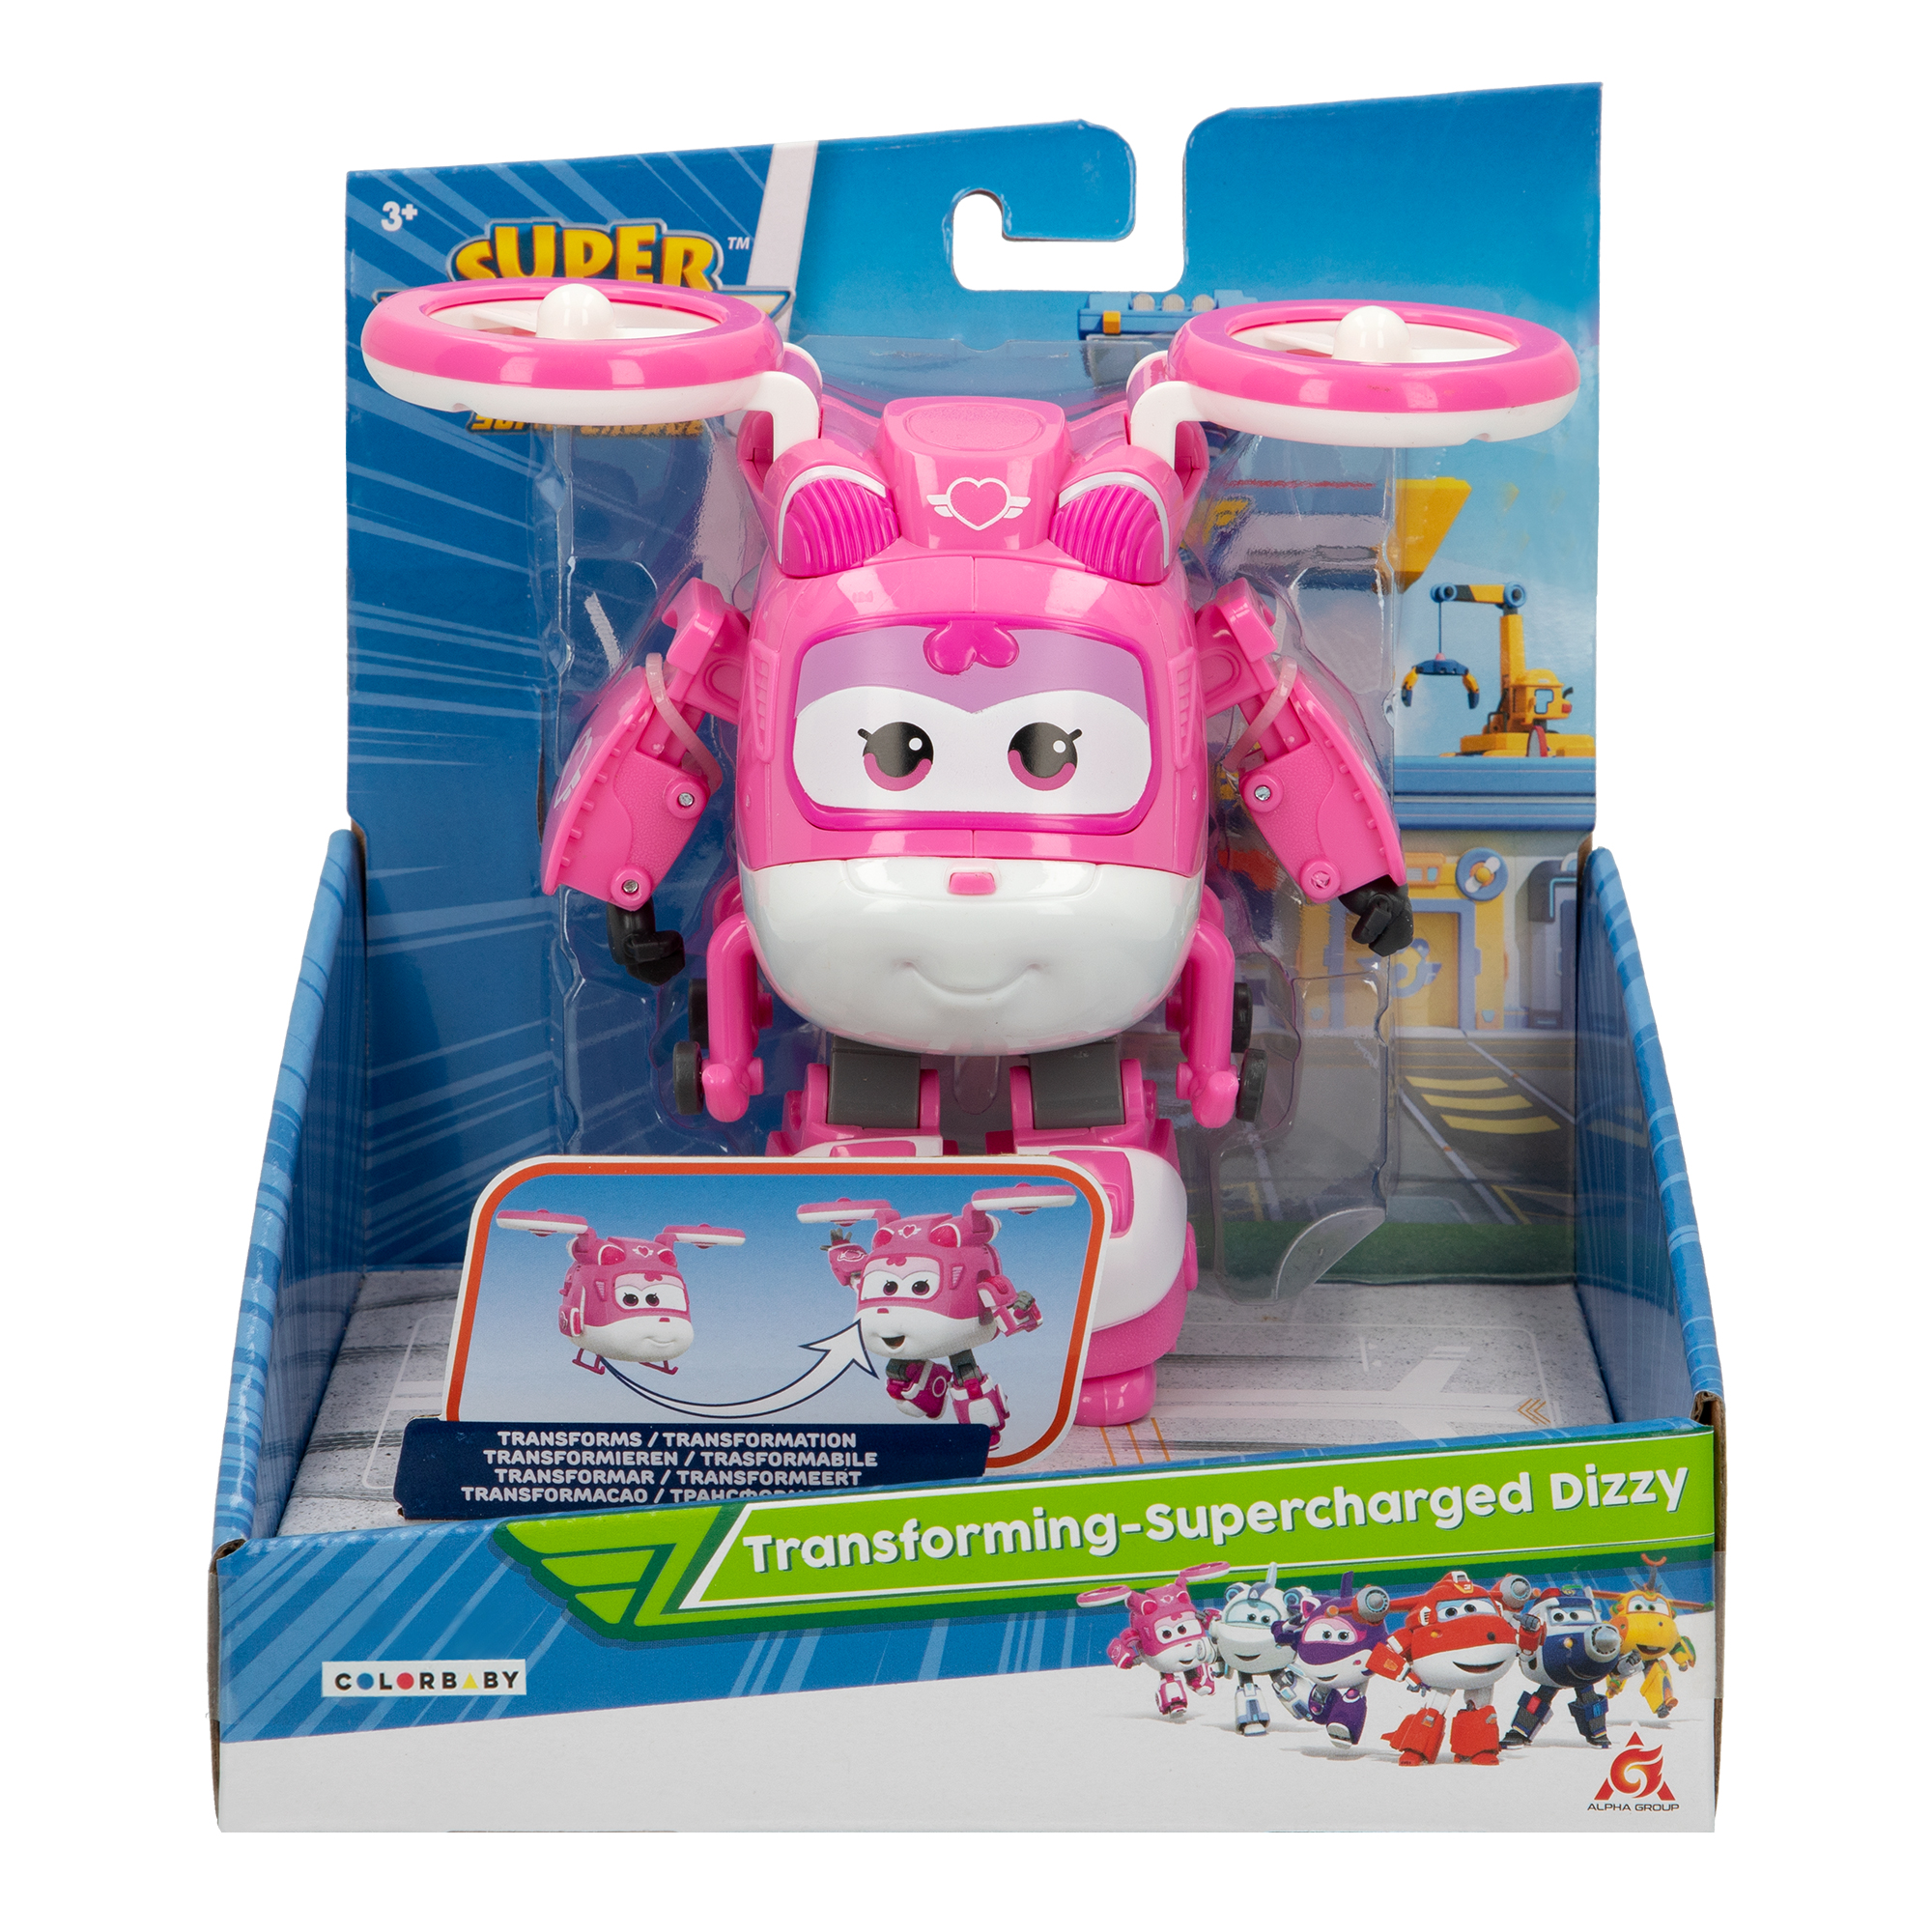 Juguete Super Wings Dizzy transformable